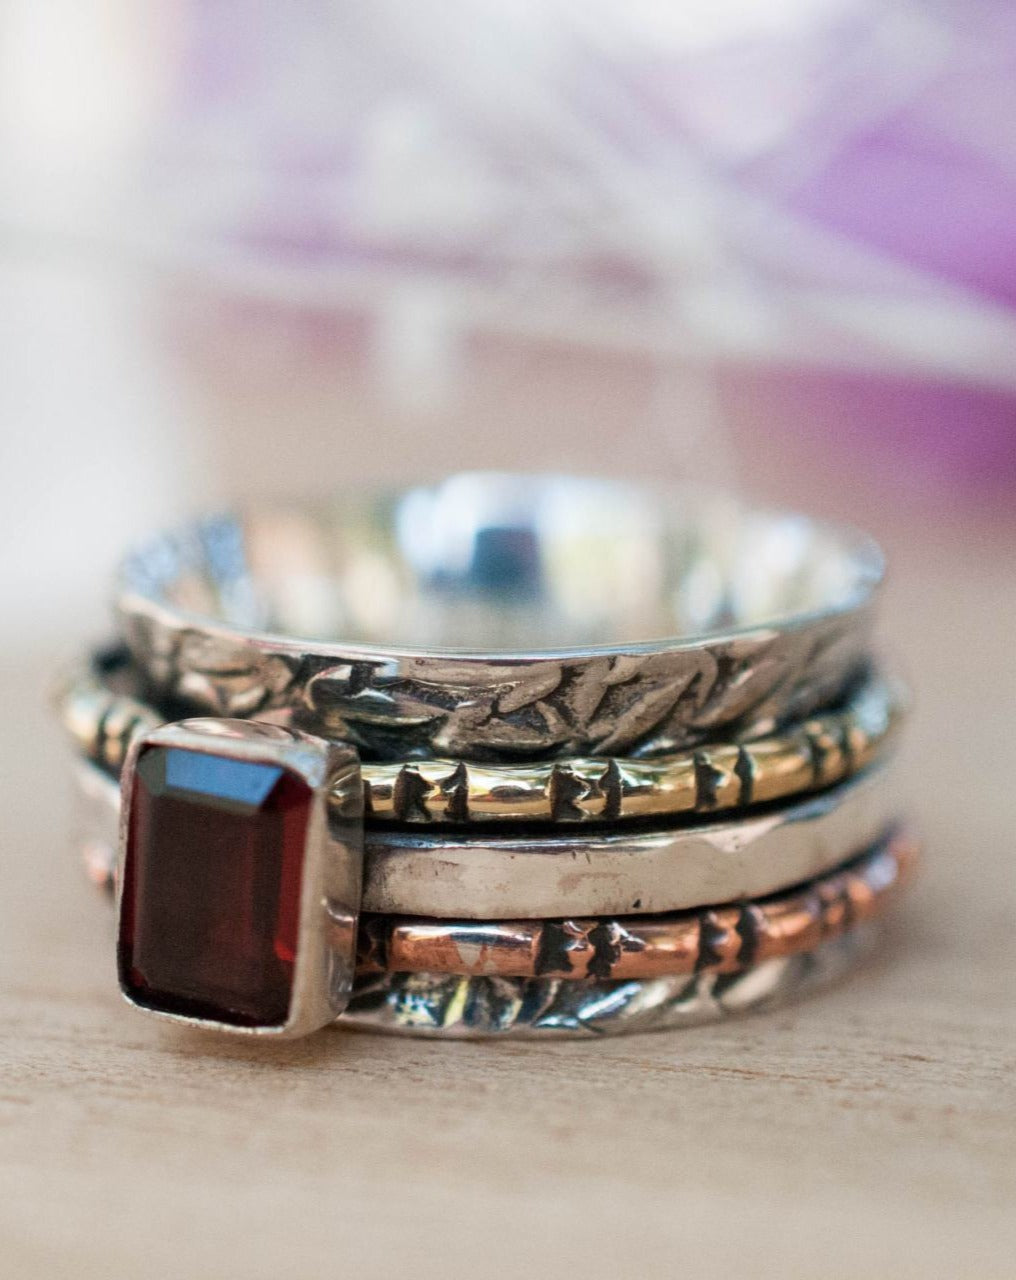 Garnet Ring * Meditation * Spinner * Spinning * Anxiety * Hammered * Worry * Boho * Spin * Thin Band *Sterling Silver *Copper *Bronze BJS020